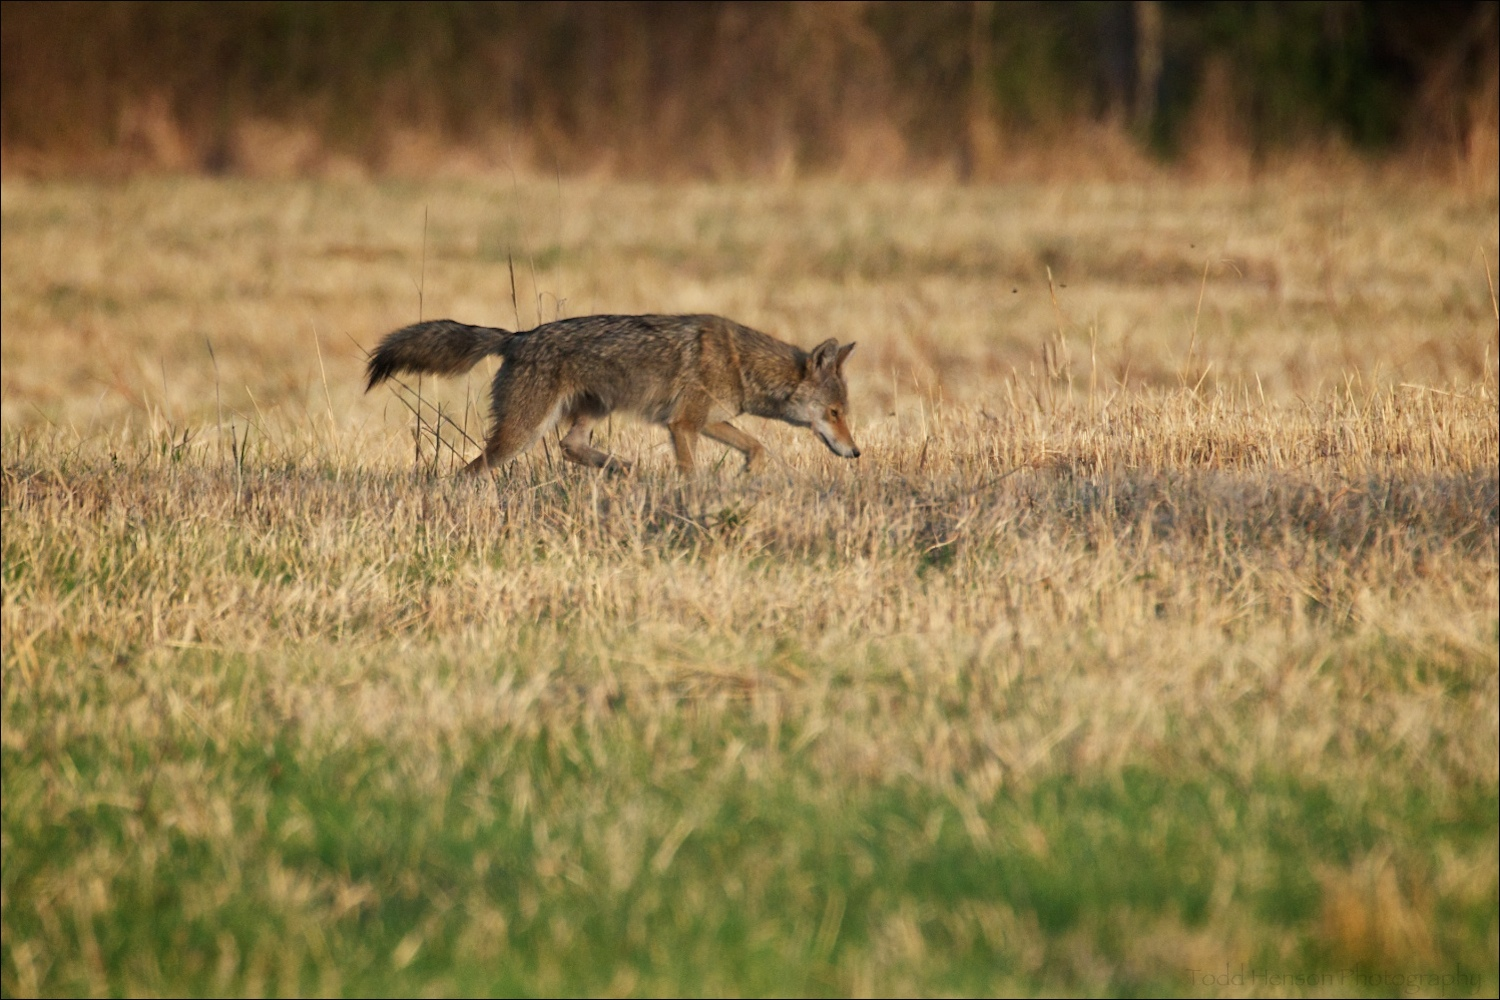 Coyote limping through field